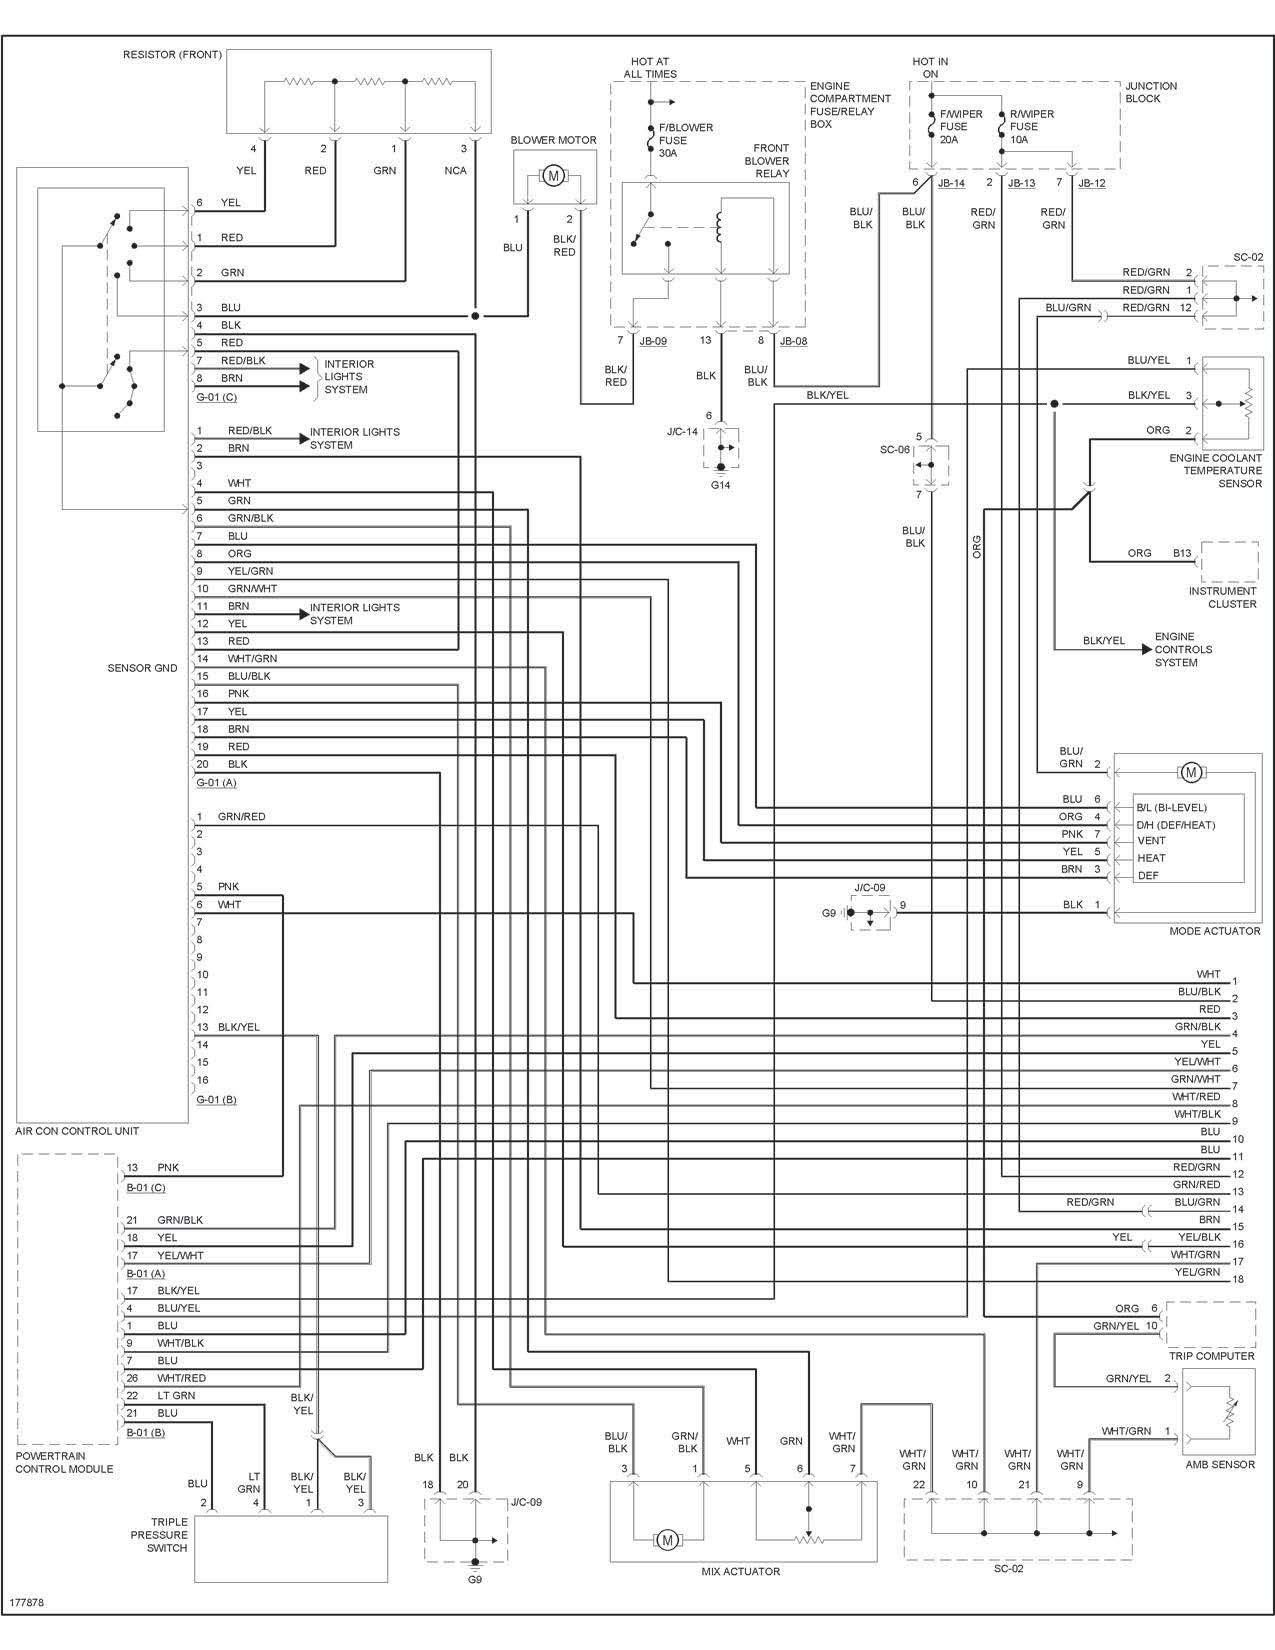 06 sorento tps wiring diagram trusted wiring diagrams pertaining to throttle position sensor wiring diagram [ 1275 x 1650 Pixel ]